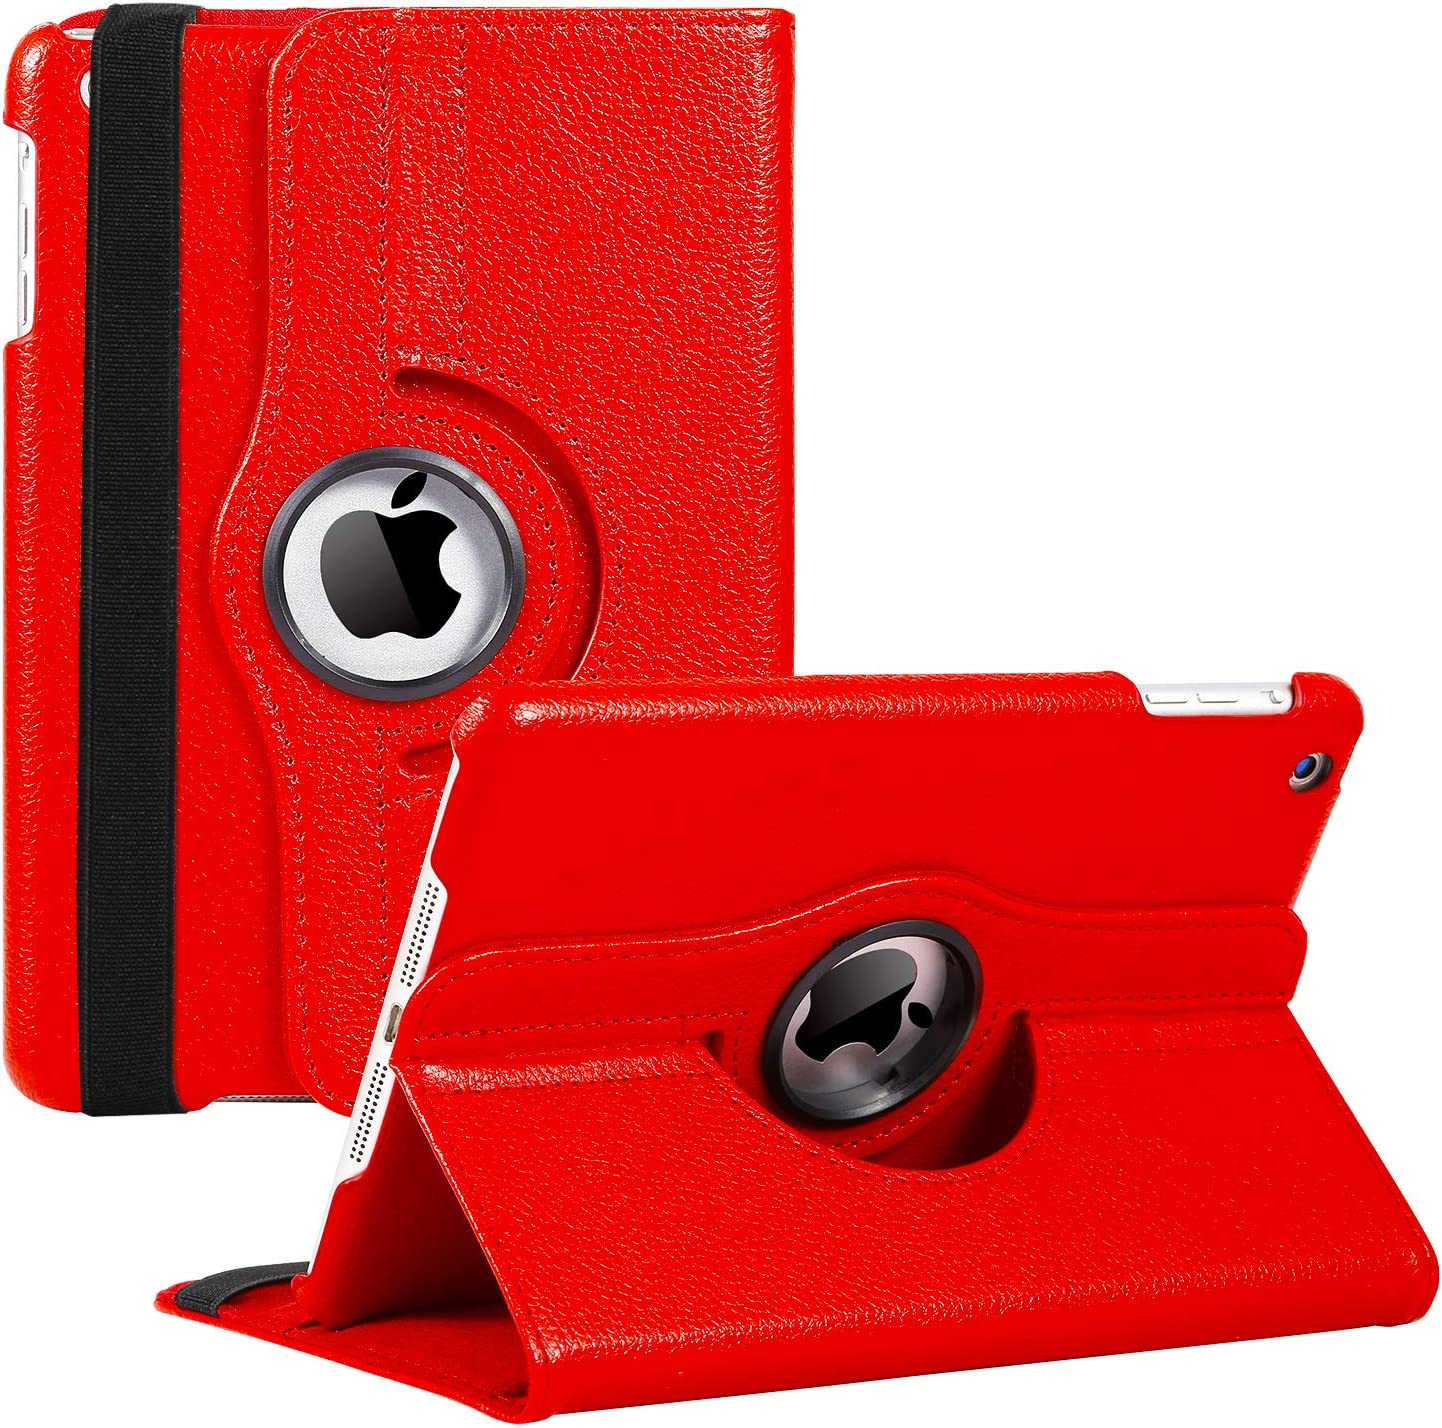 iPad Mini 1/2/3 Case - 360 Degree Rotating Stand Smart Cover Case with Auto Sleep/Wake Feature for Apple iPad Mini 1 / iPad Mini 2 / iPad Mini 3 (Red) …